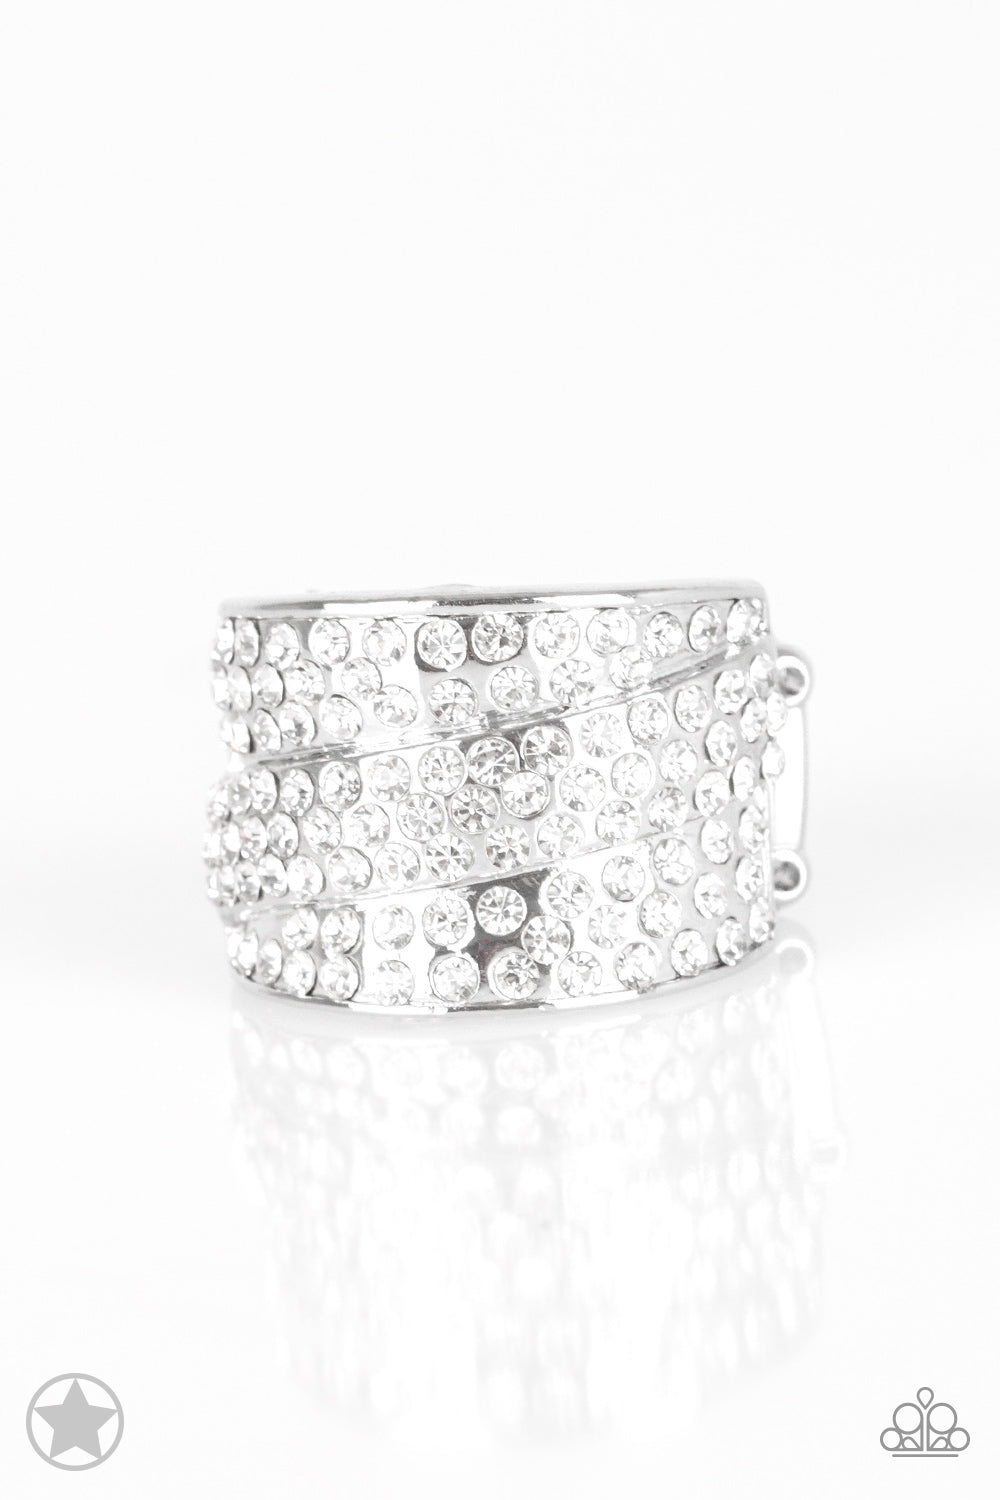 Paparazzi Millionaires Club - White Ring - Be Adored Jewelry